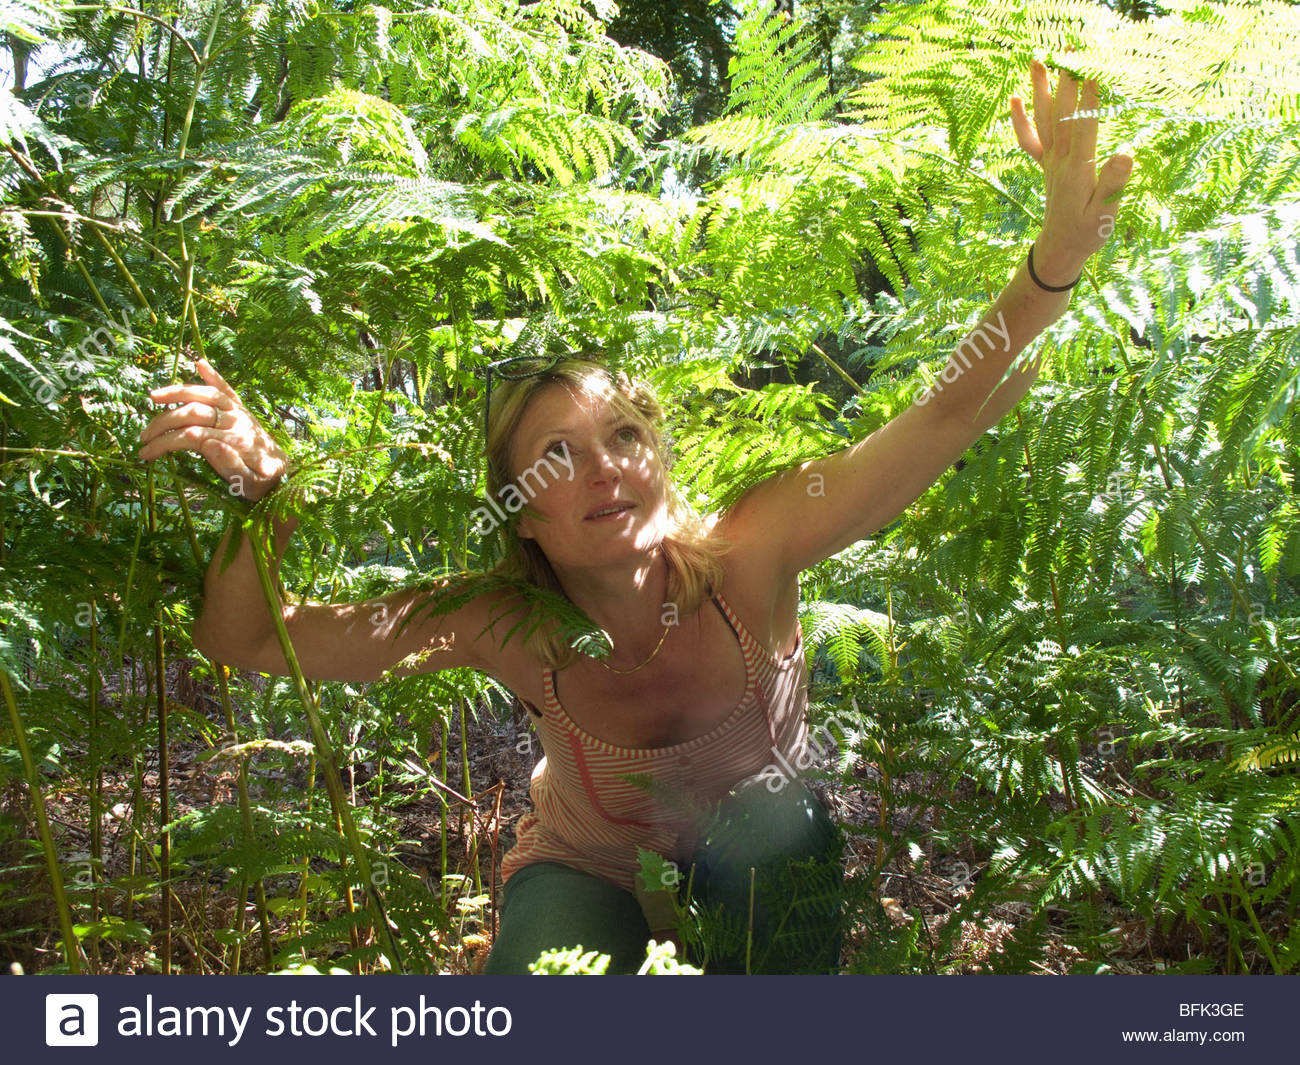 Woman crouching among plants in forest and looking up - Stock Image